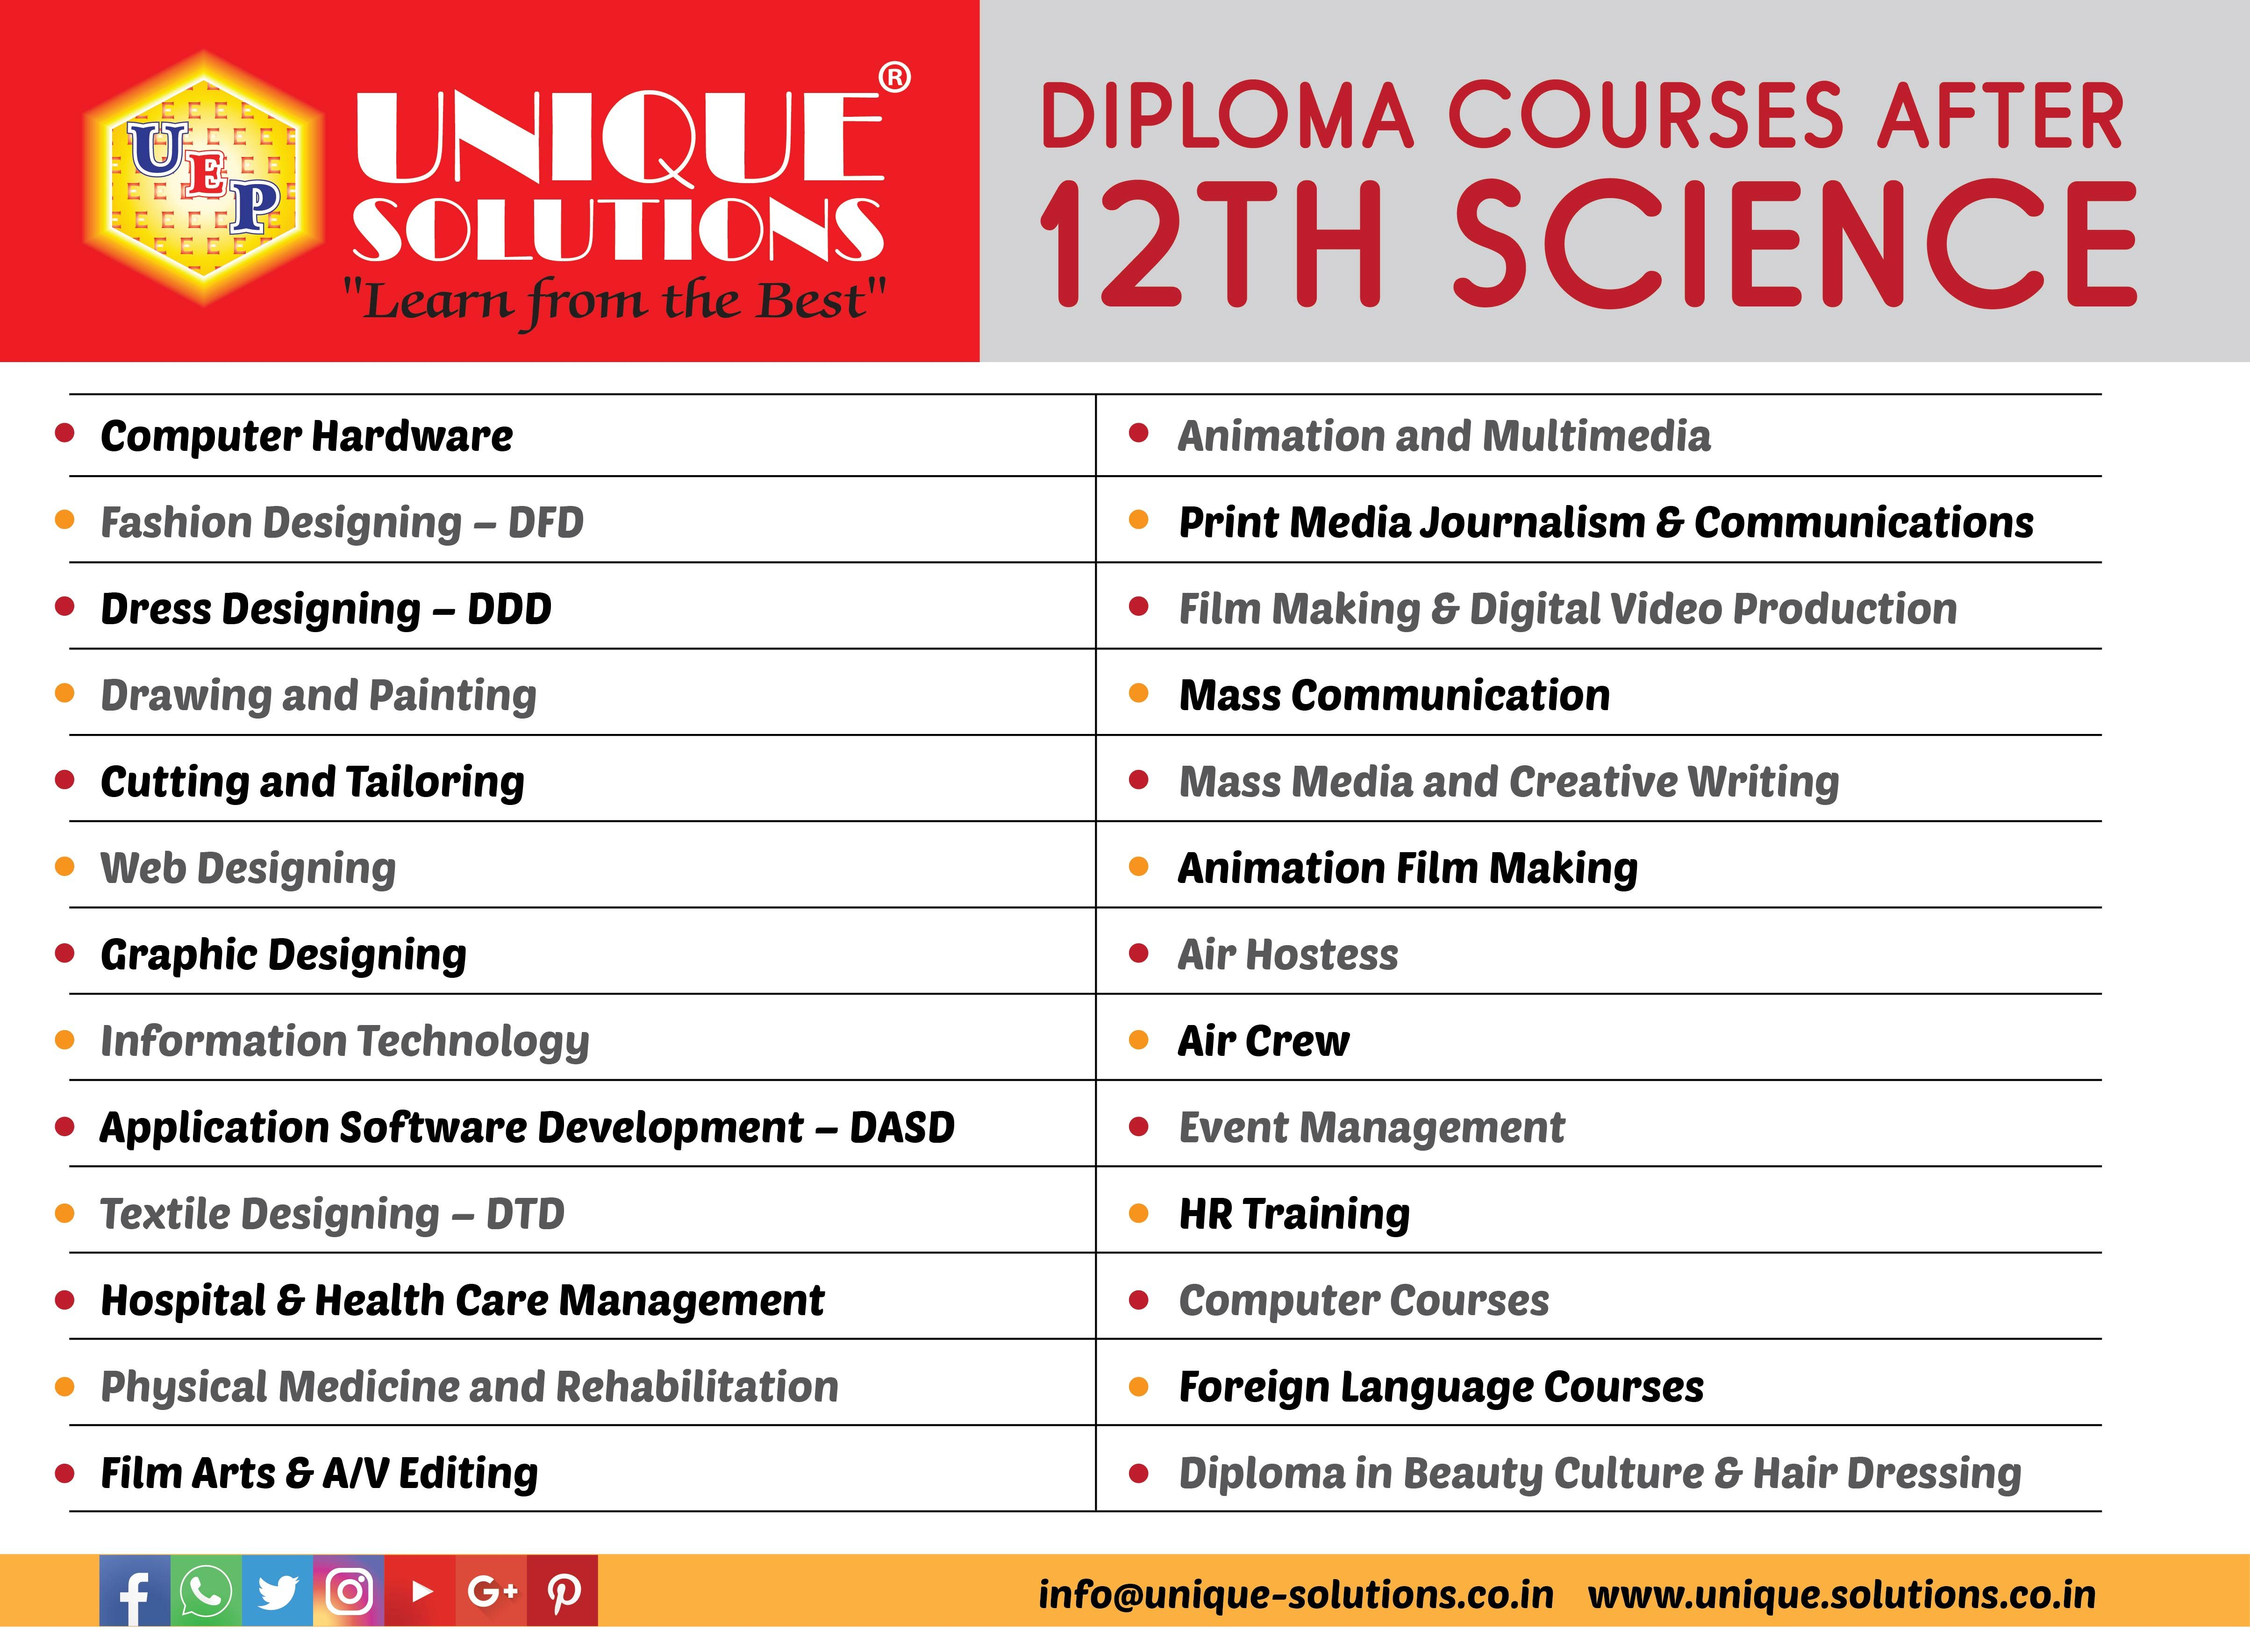 3rd June 2017 Uniquesolutions Pvt Ltd Learnfromthebest Diploma Courses After 12th Science Fun Learning Creative Writing Best Computer